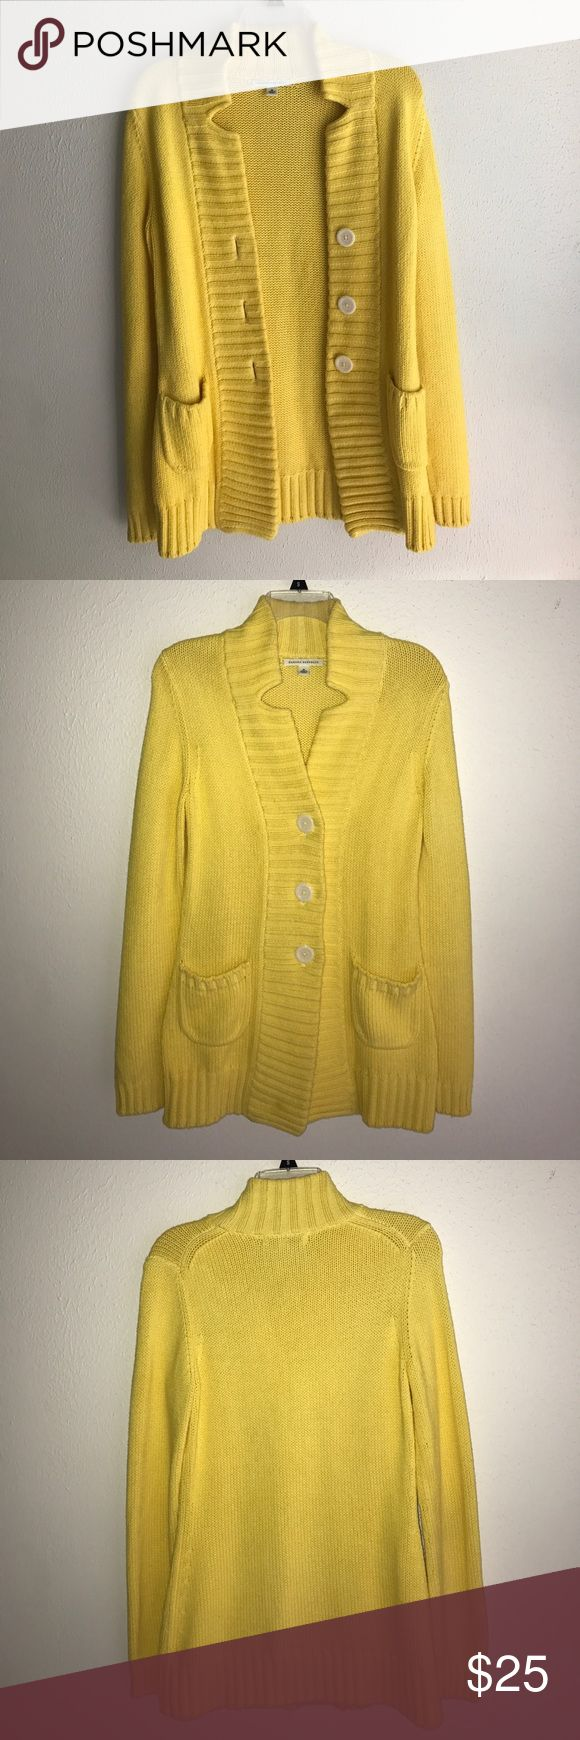 LAST CHANCE 🍉sale this weekend only🍉 Unique, chic, and soft yellow sweater. The sweater was originally white but was dyed yellow a few years ago for a costume. 🌻price goes back up Monday morning!🌻 Banana Republic Sweaters